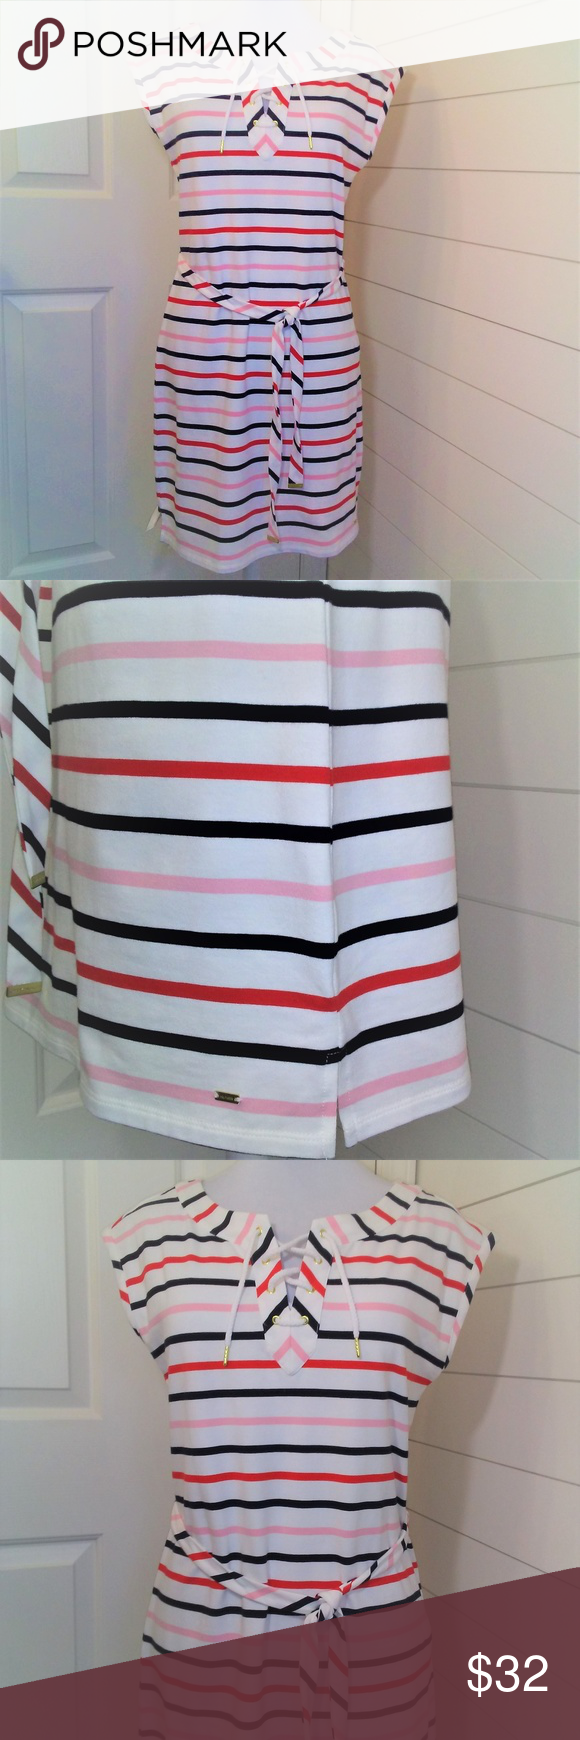 fc3d3bca41 Tommy Hilfiger Nautical Stripe Dress w Tie Belt M Tommy Hilfiger Nautical  Stripe Dress w Tie Belt. Women s size M. Red white blue and soft pink  stripes with ...